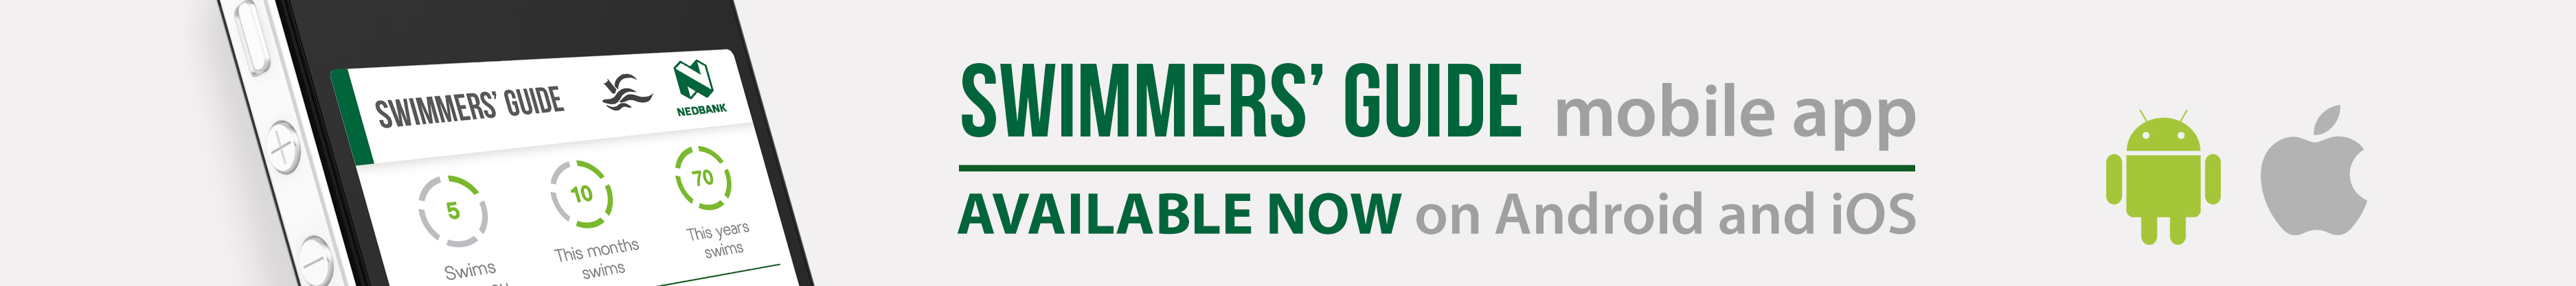 Swimmers Guide App Banner